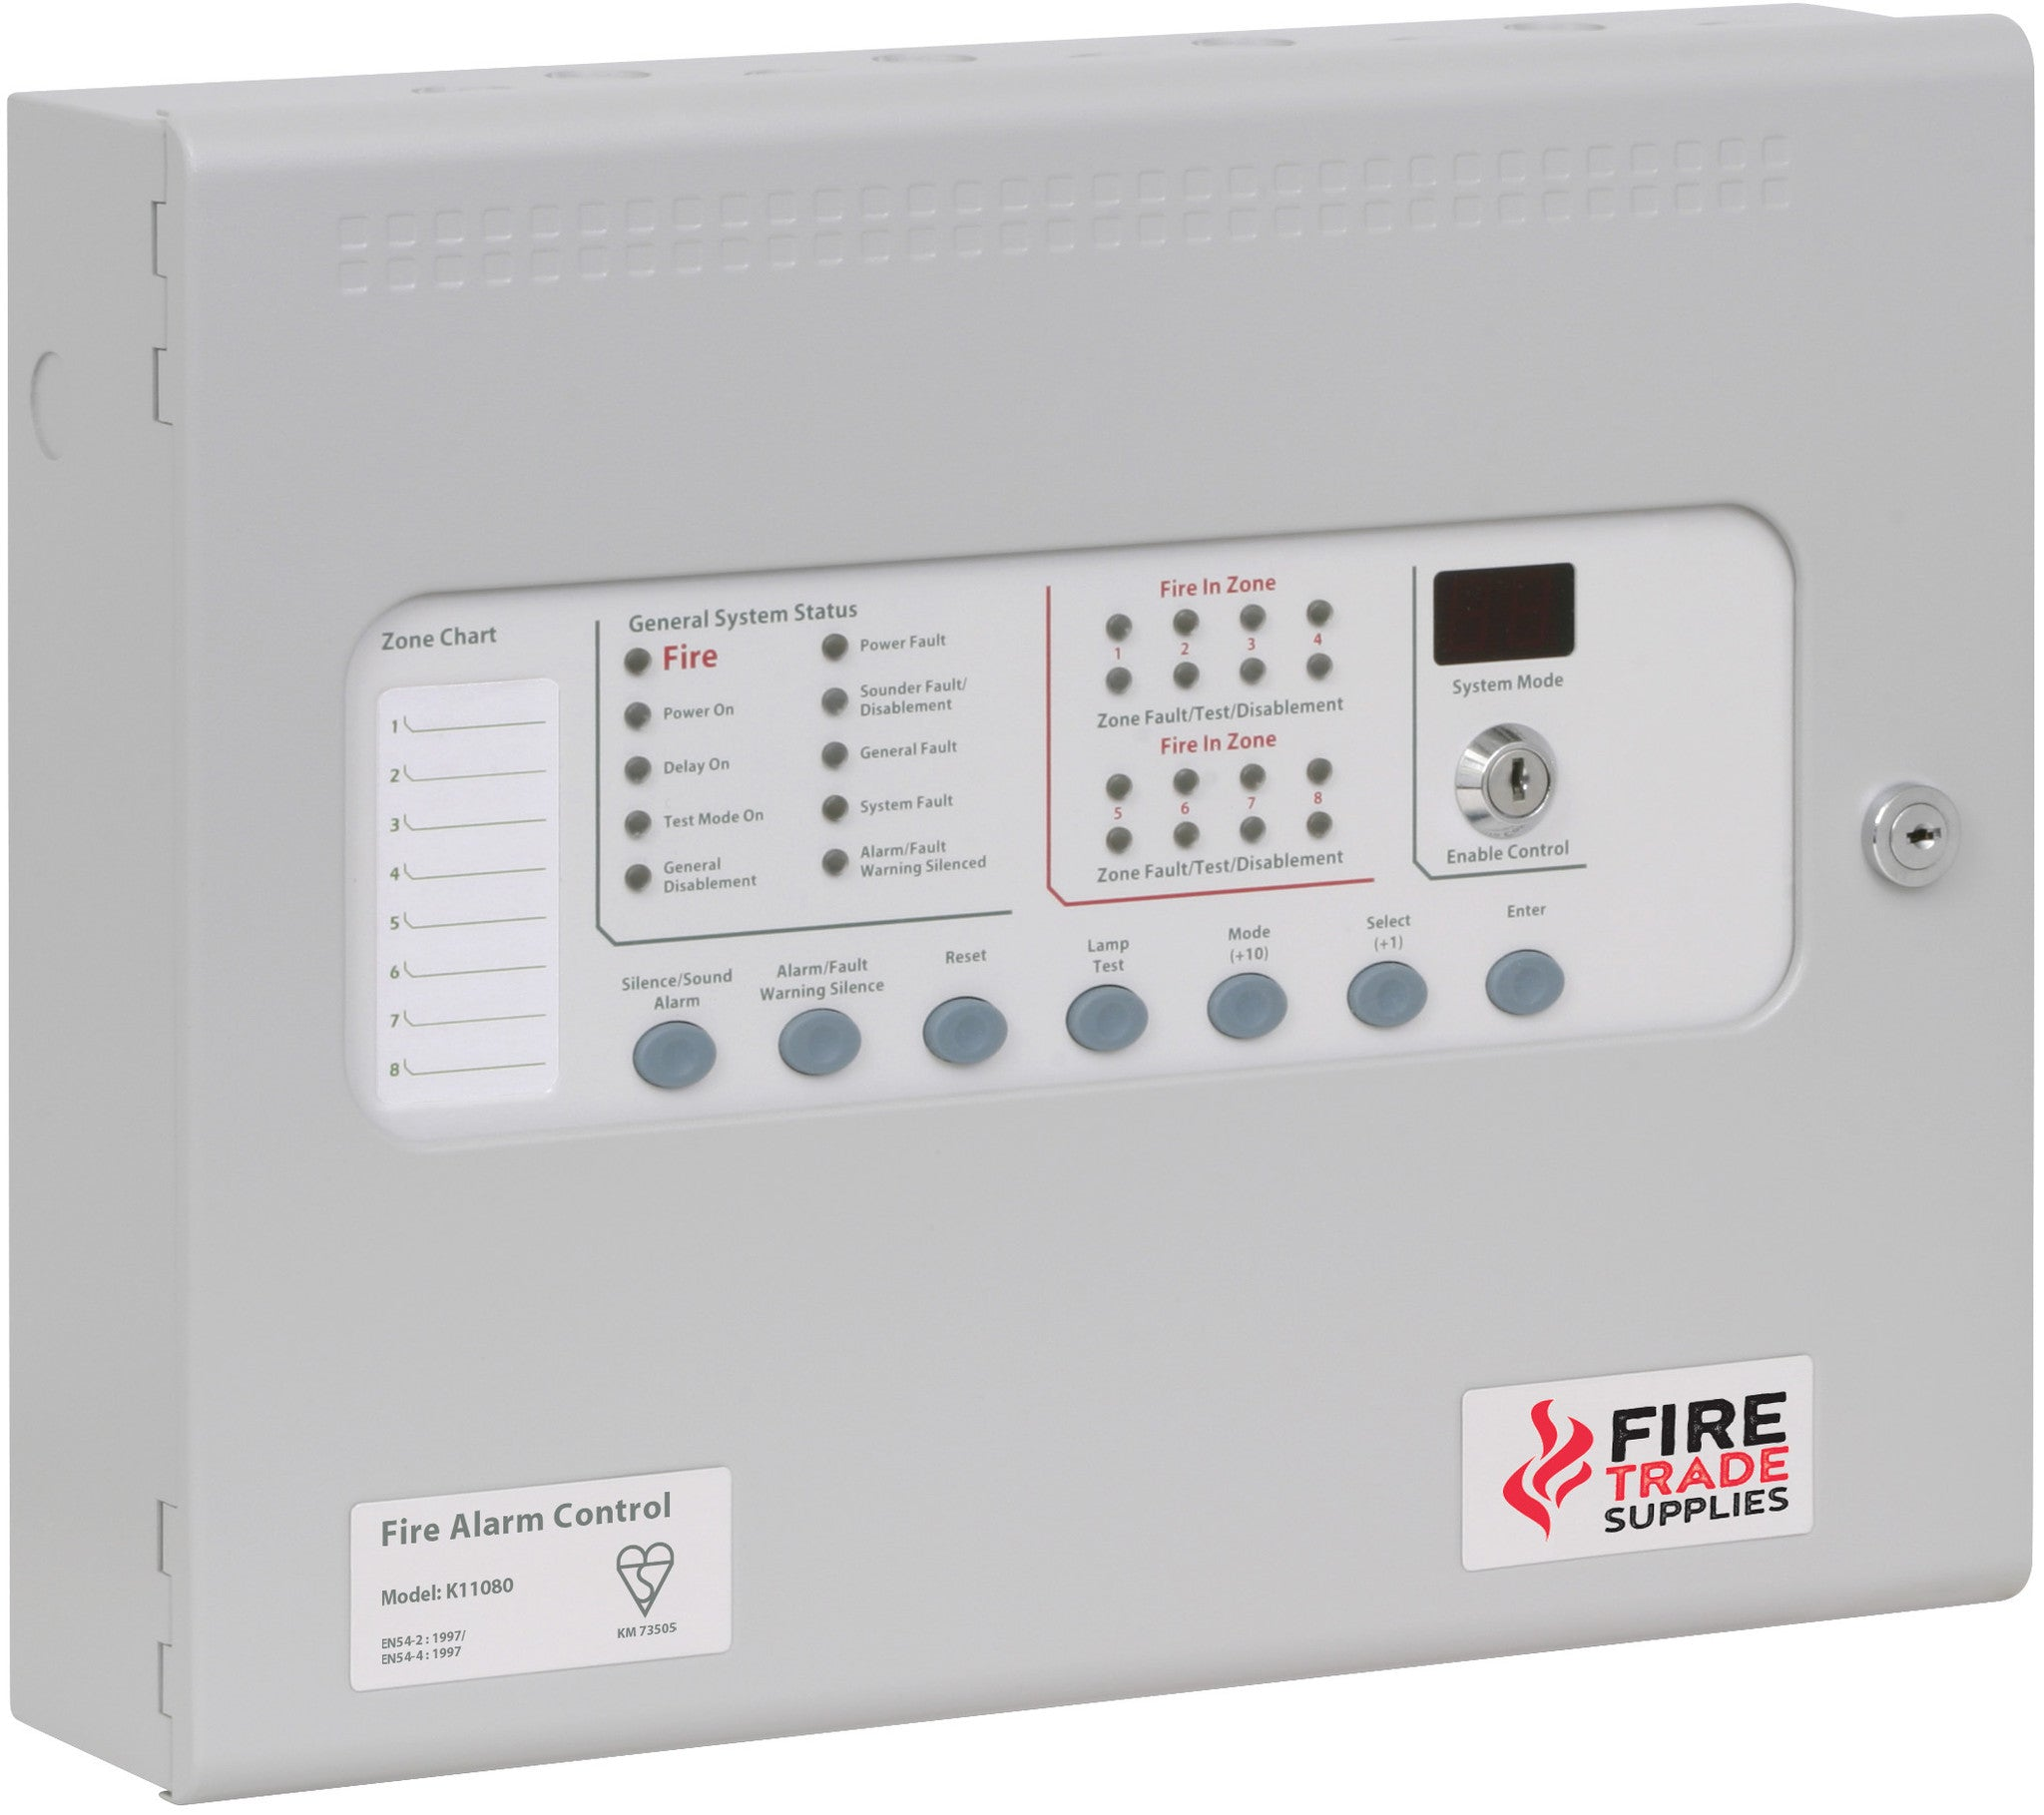 Kl11080m2 Kentec Sigma Cp Conventional Fire Alarm Panel 8 Zones 4 Surface Wiring System Wire Mounted With Lcmu